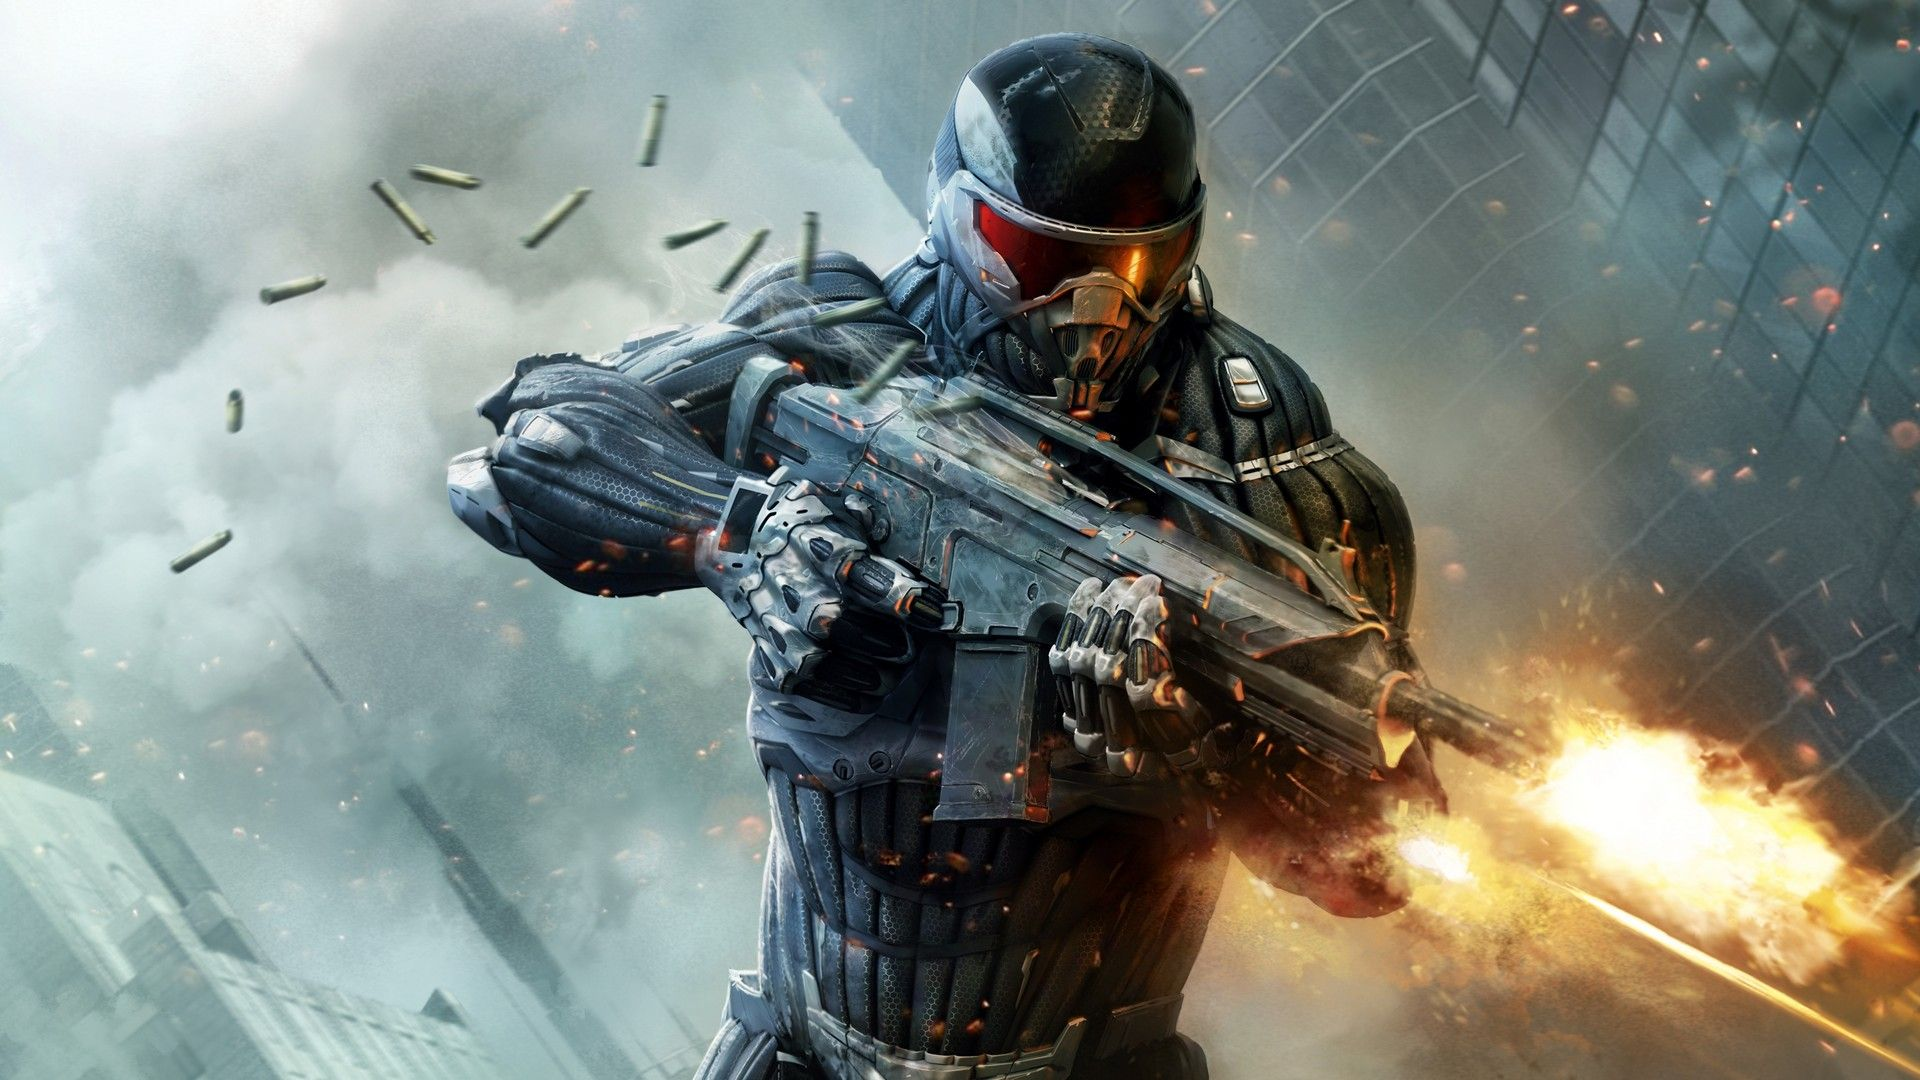 Epics Game Hd Wallpaper In 2020 With Images Full Hd Wallpaper